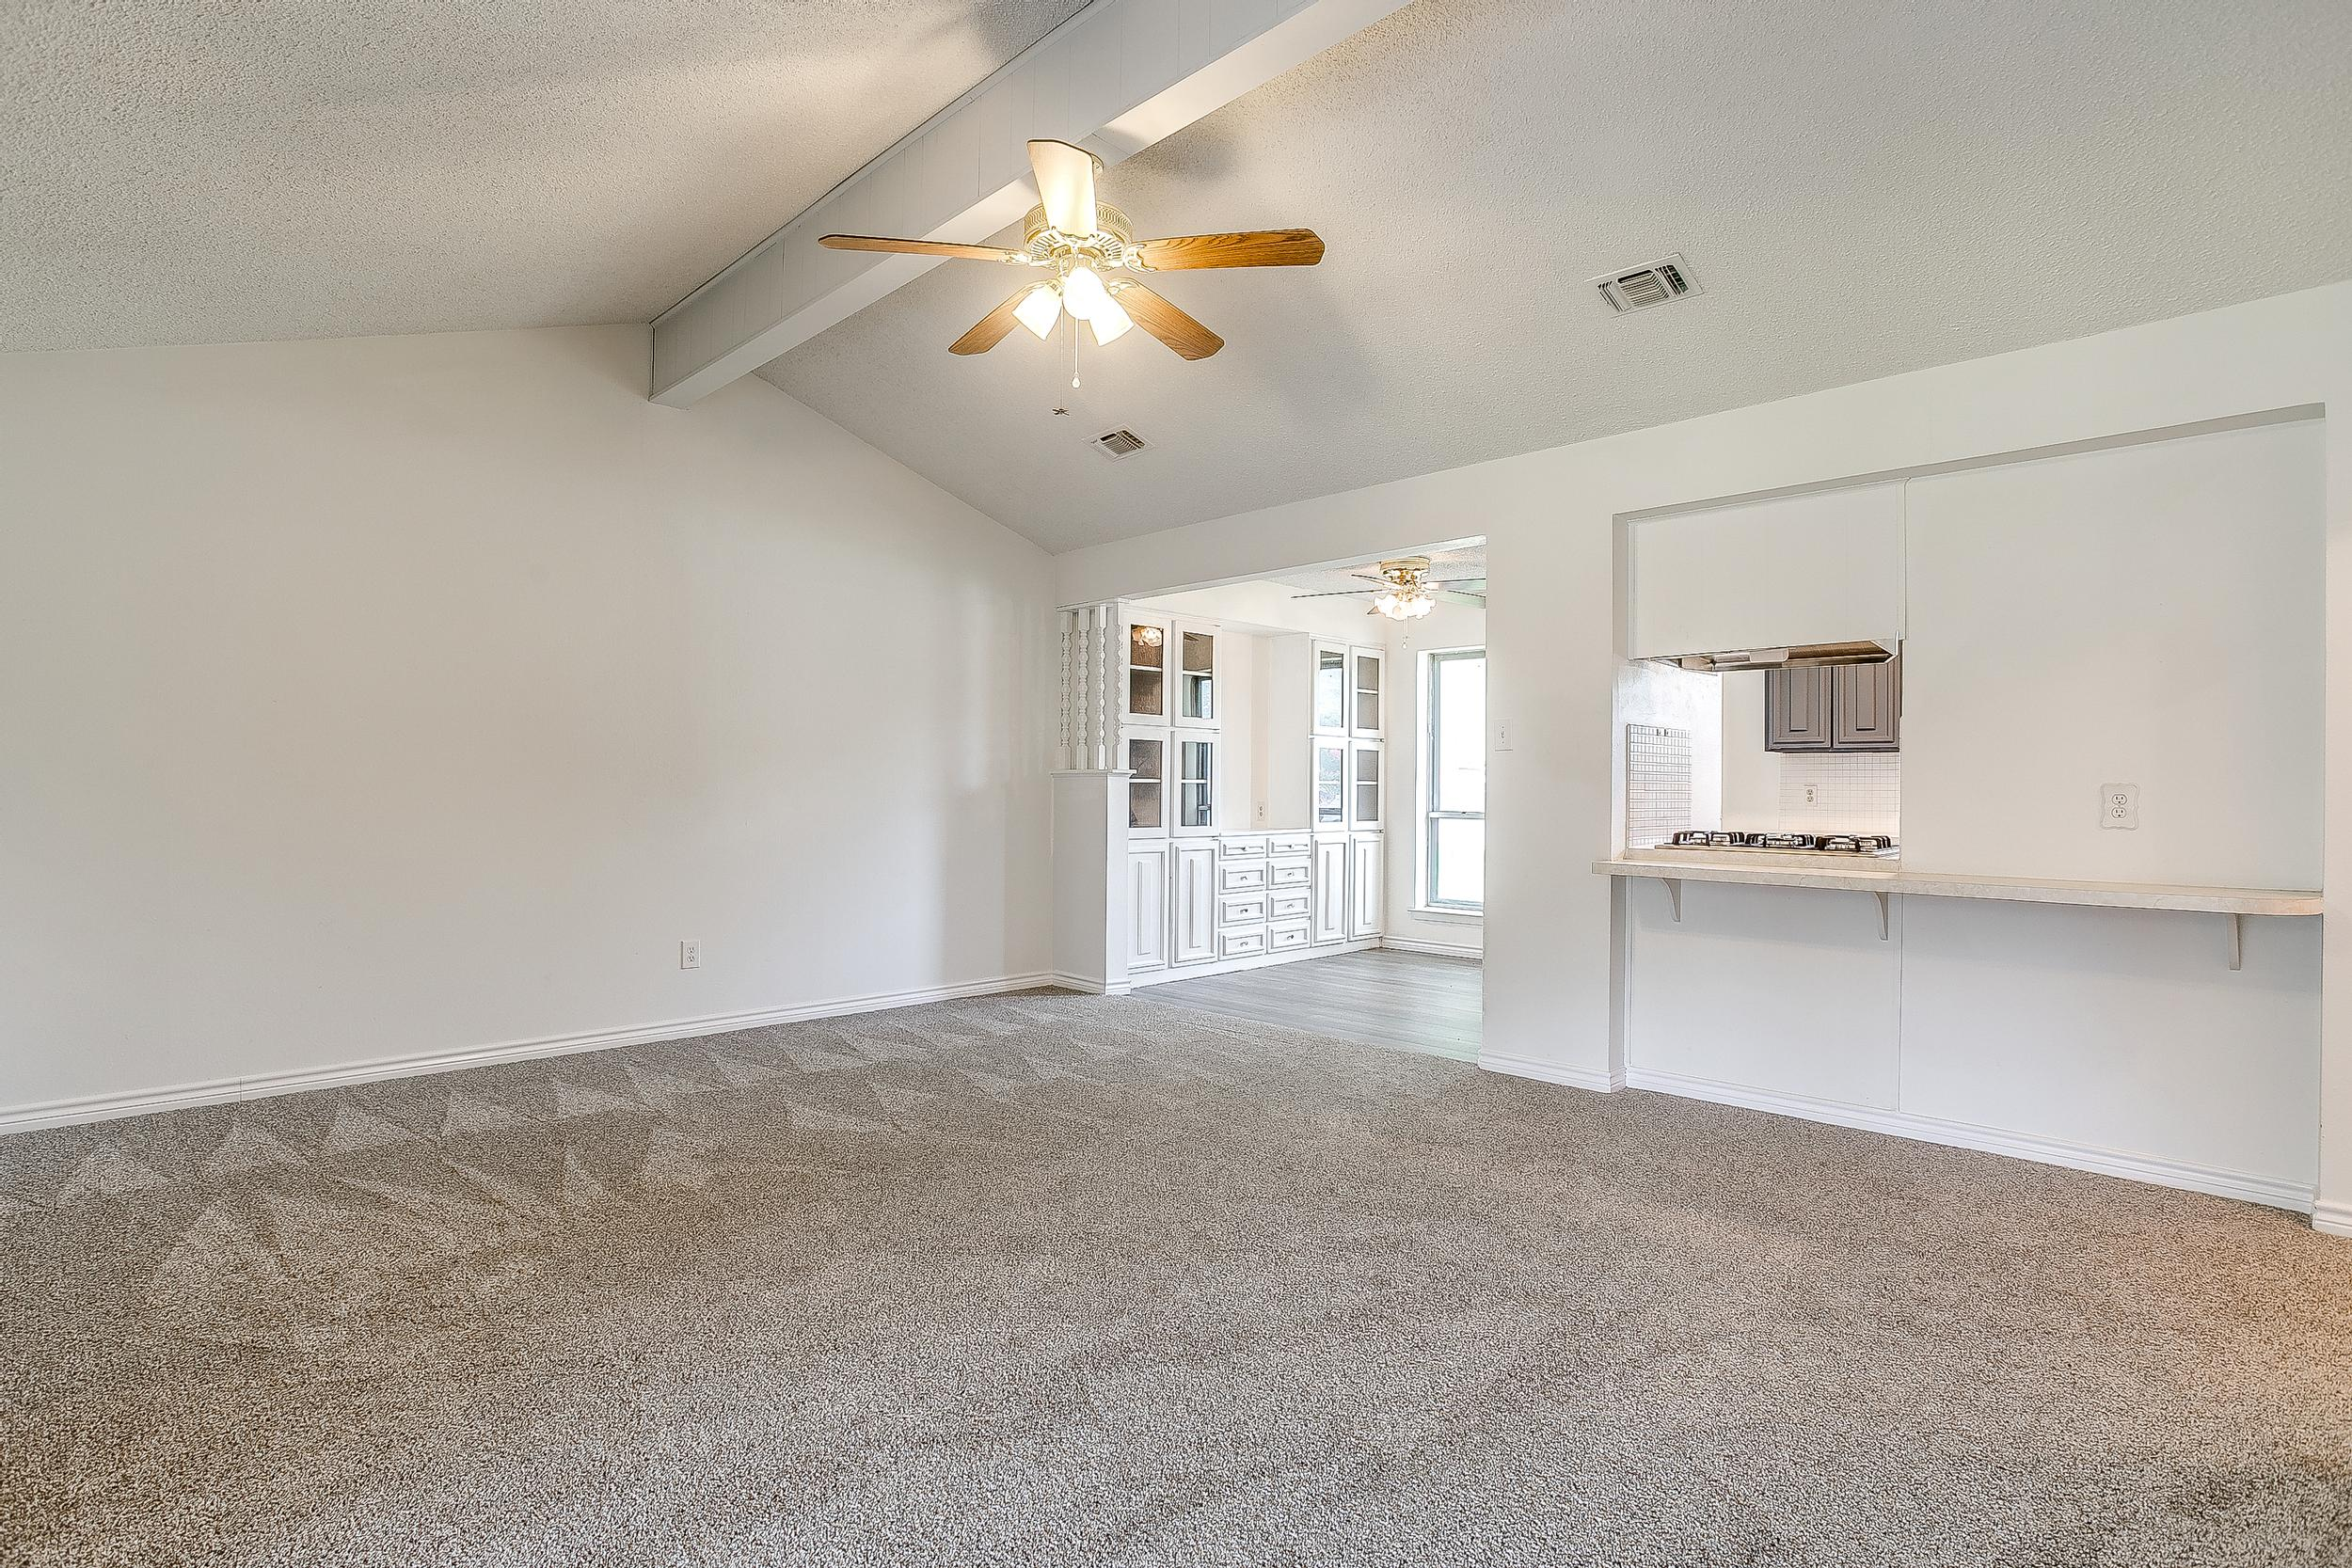 Rental property management in North Texas